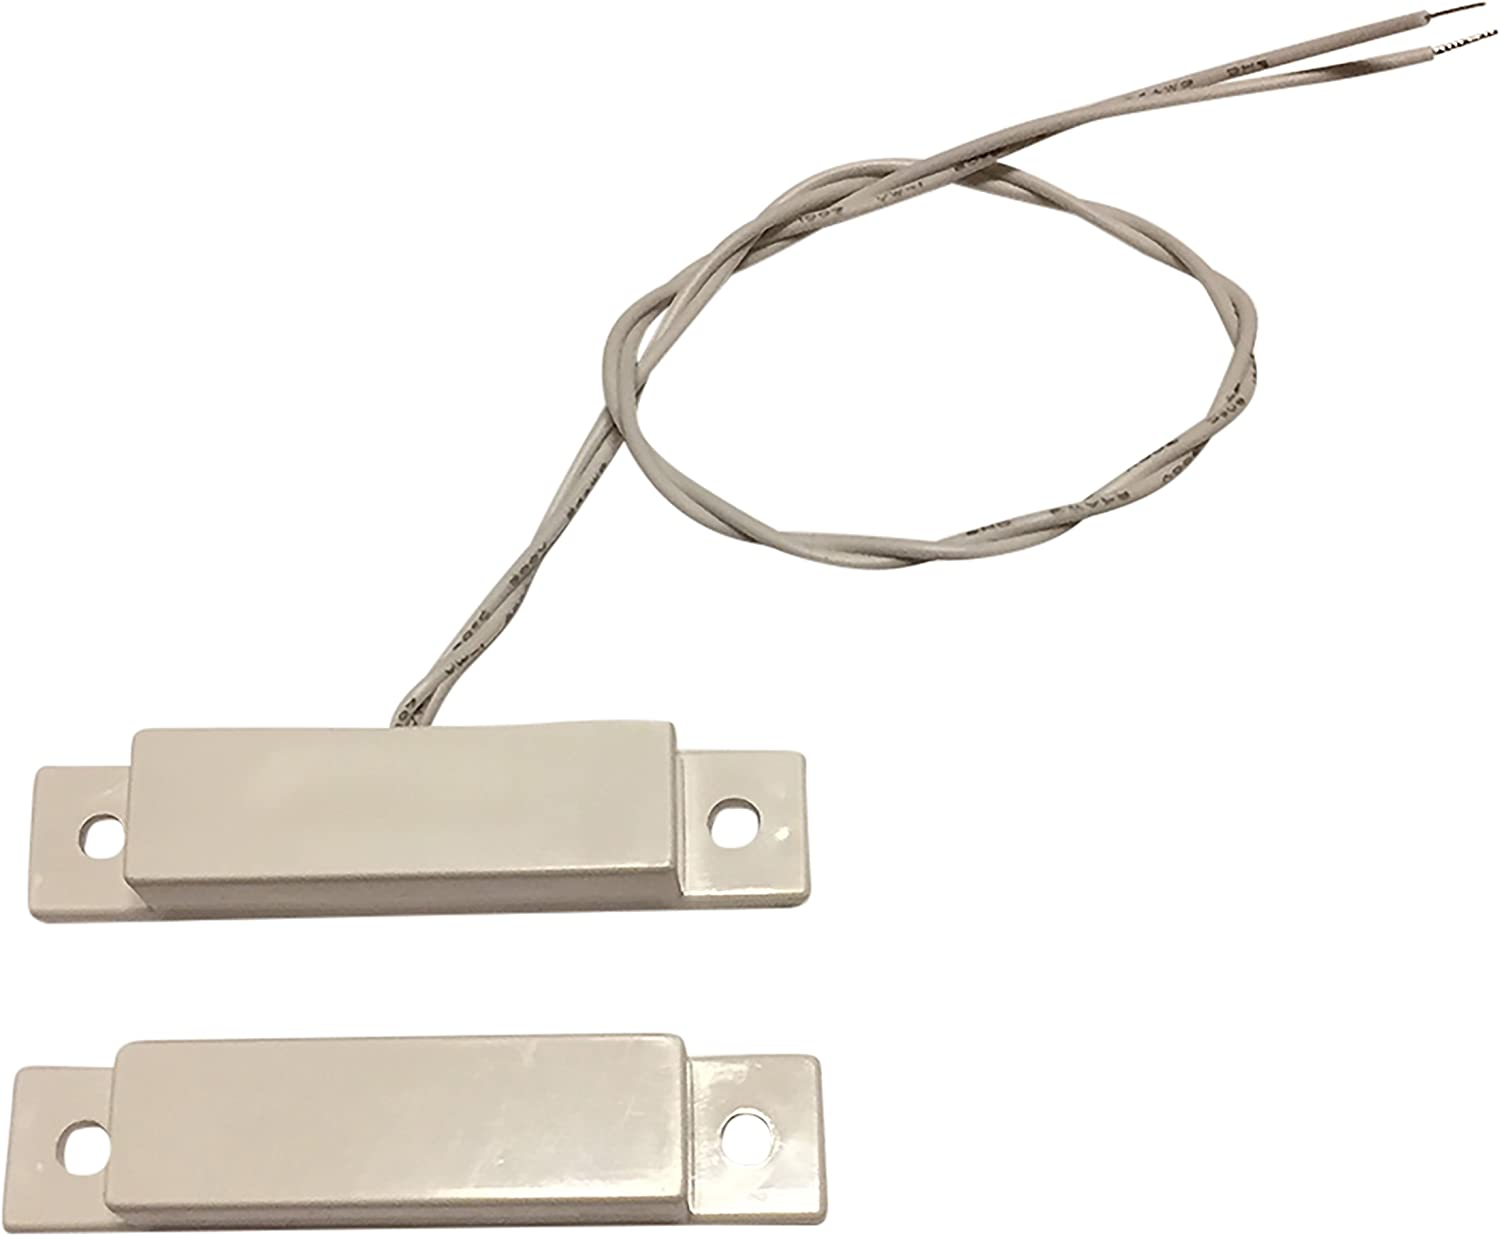 """Amazon.com : 1 pcs Wired White Door Contacts Surface Mount NC Security  Alarm Door Window Sensors.These ¾"""" Door Contact Position switches (DCS)  Work with All Access Control and Burglar Alarm Systems : 